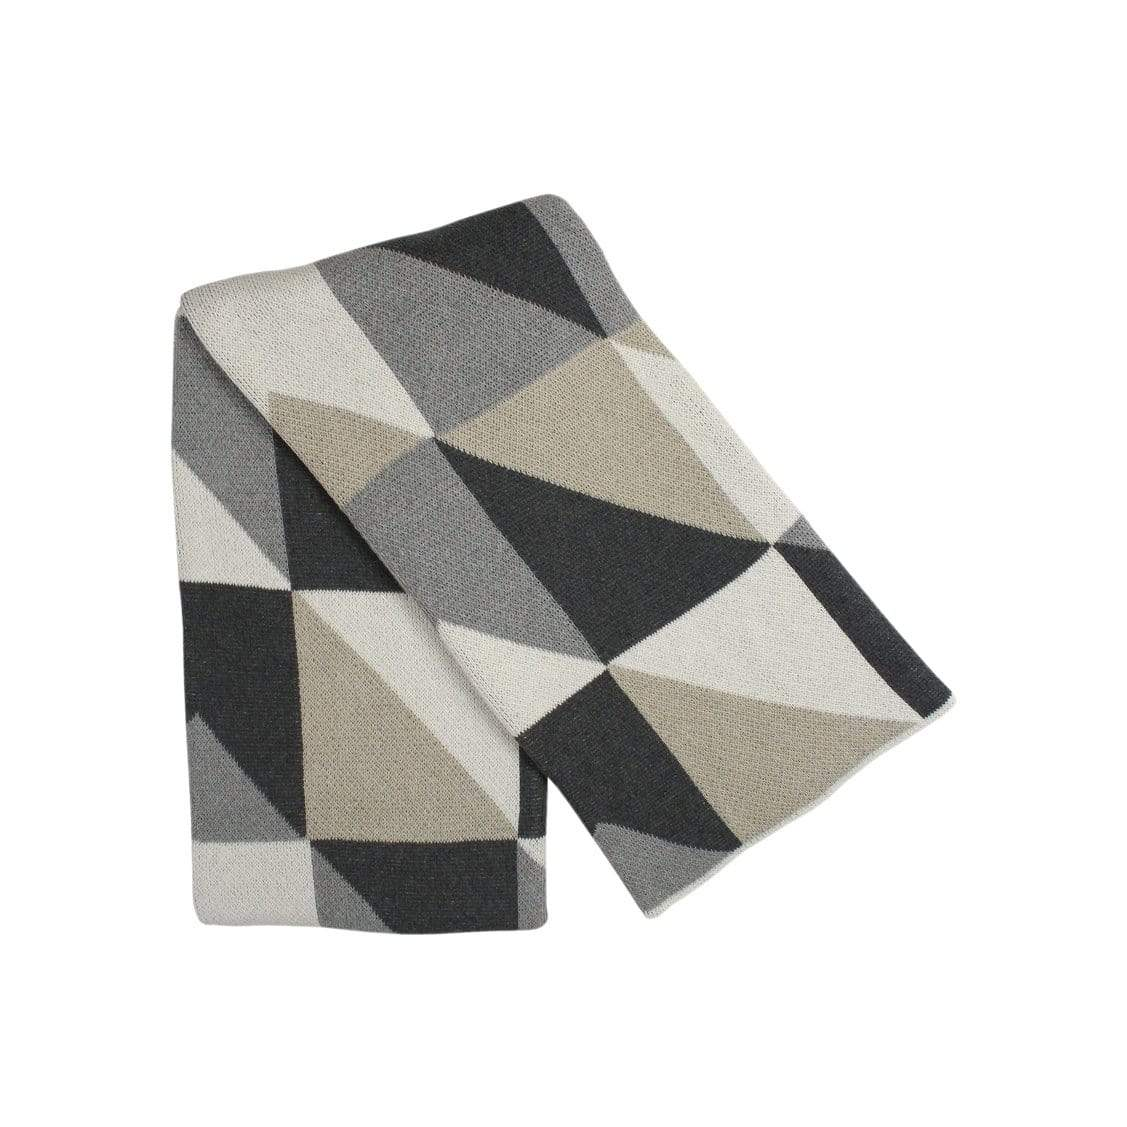 Happy Habitat Cushions + Throws Neutral Angles Throw